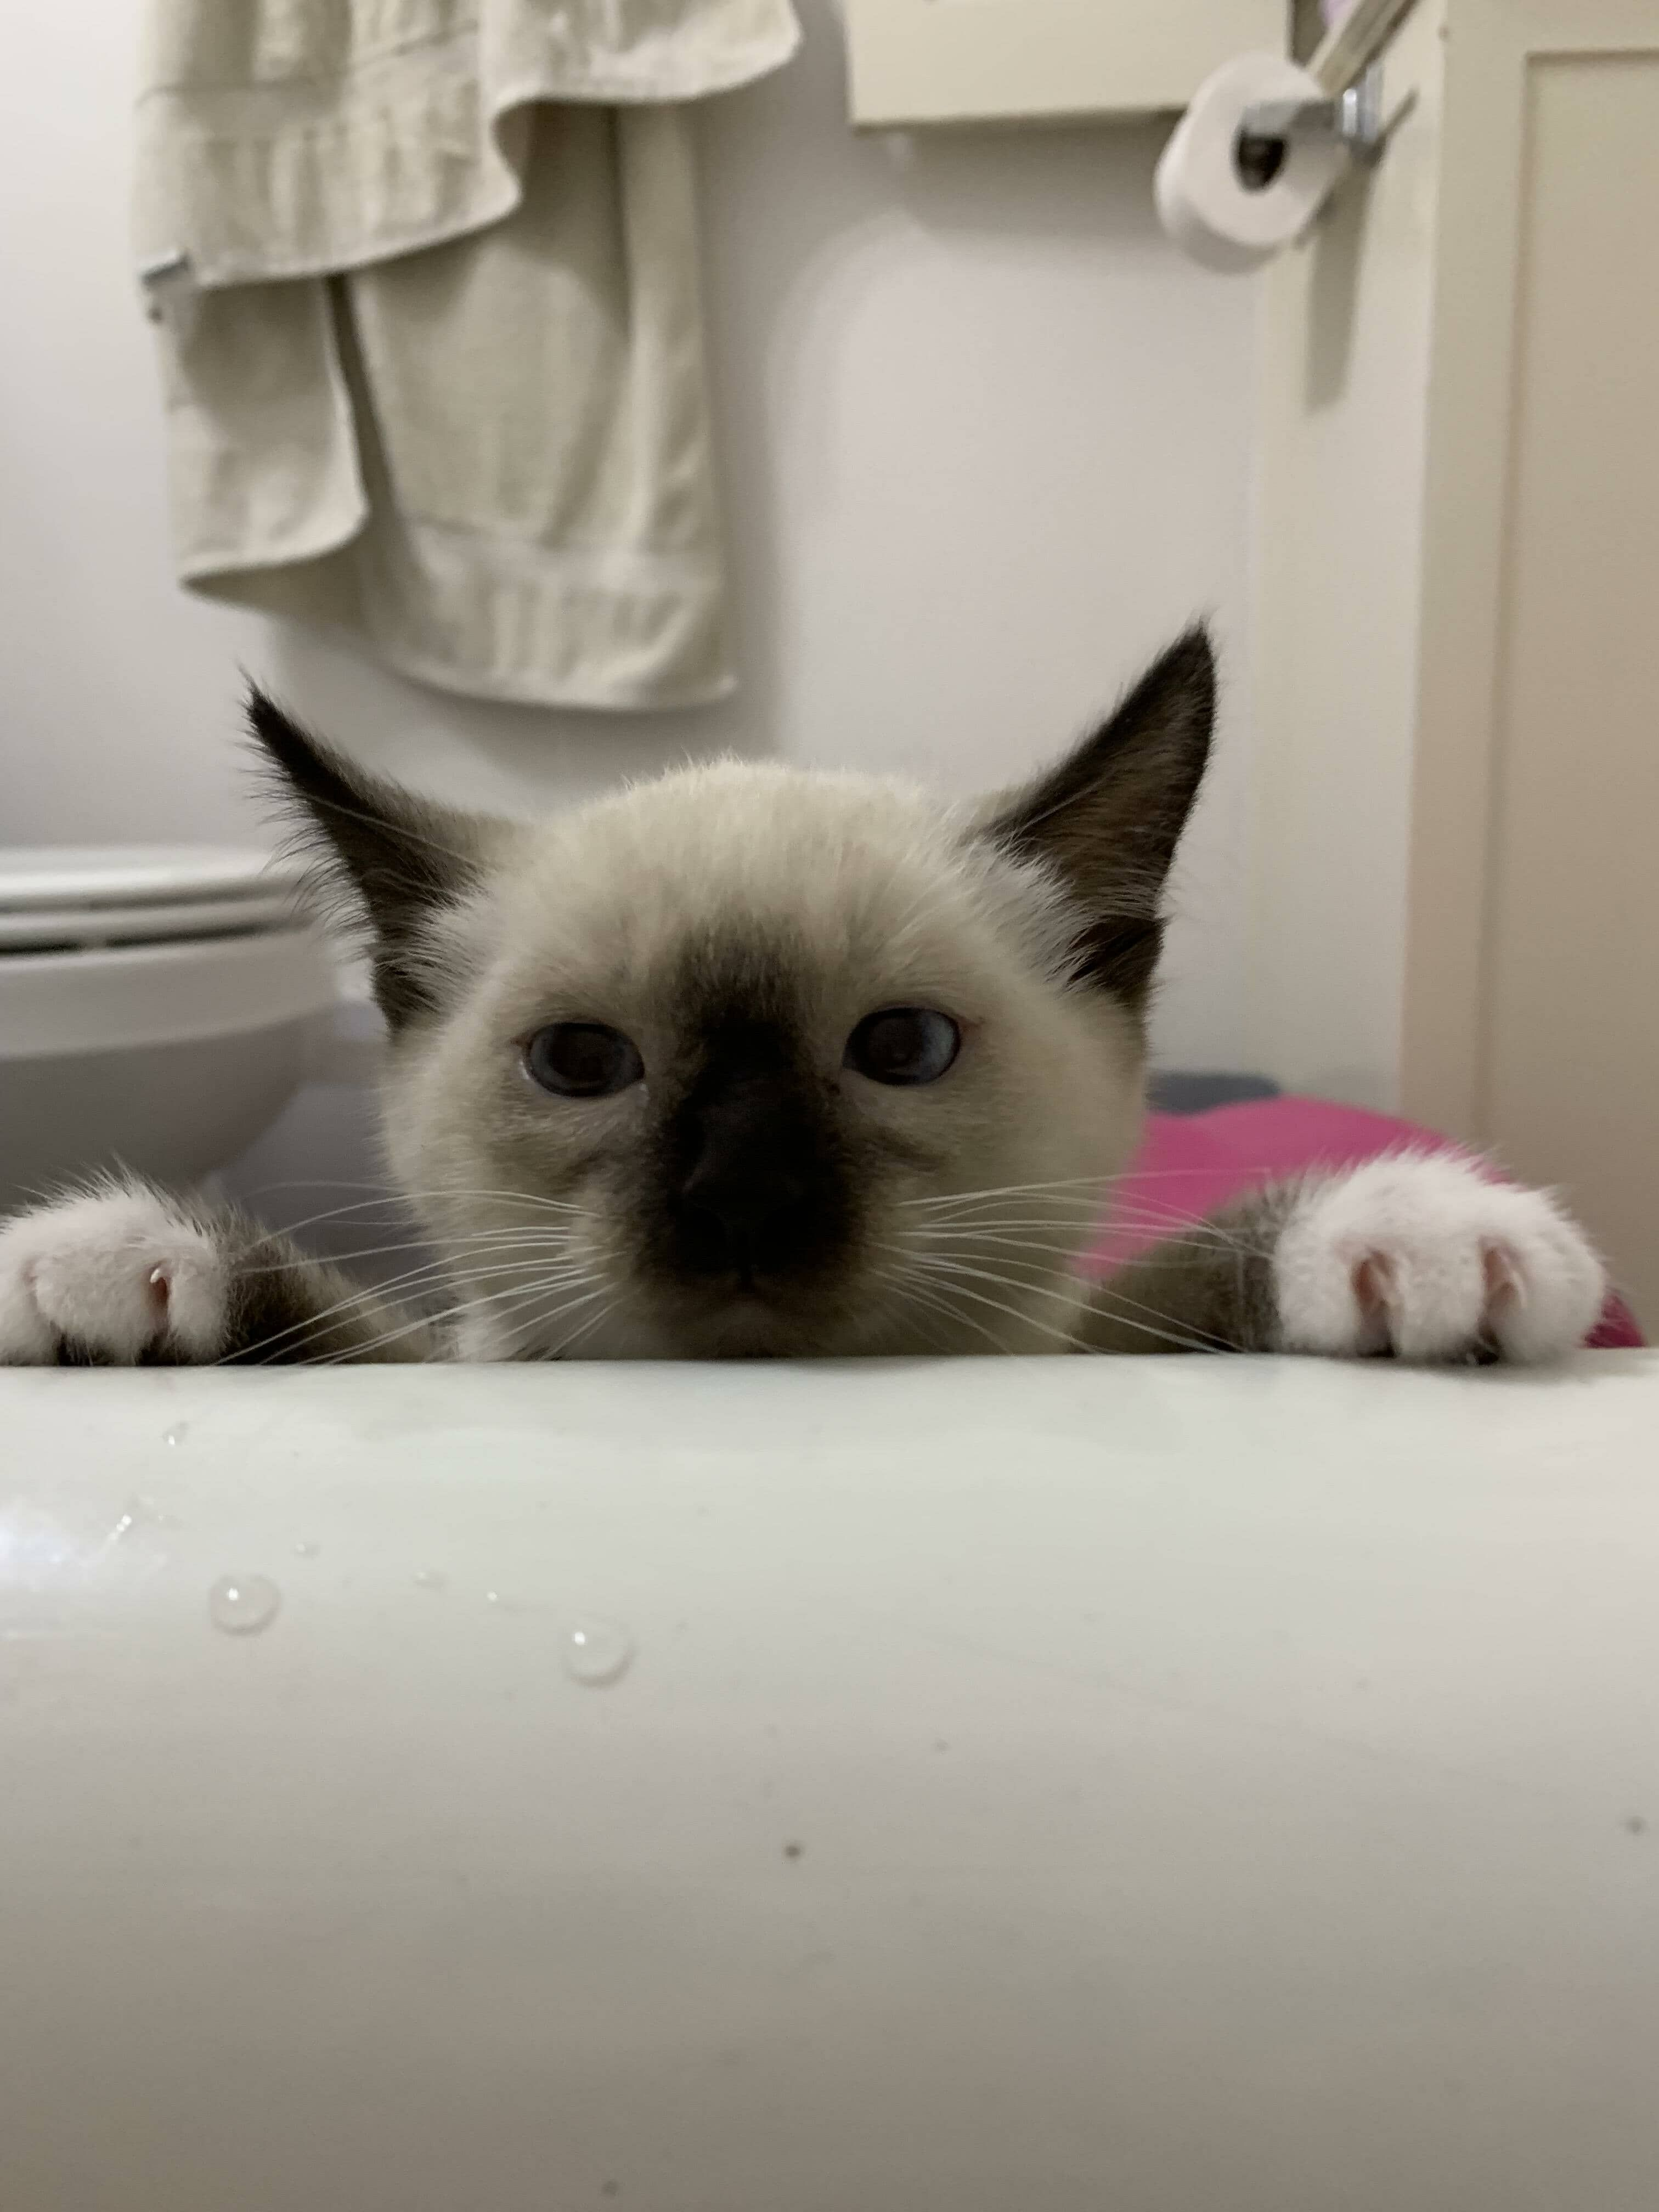 Tavi My 11 Week Old Kitten Does Not Understand Why Anyone Would Take A Bath On Purpose On Cat M Funny Cat Memes Cute Cats And Dogs Funny Cat Fails